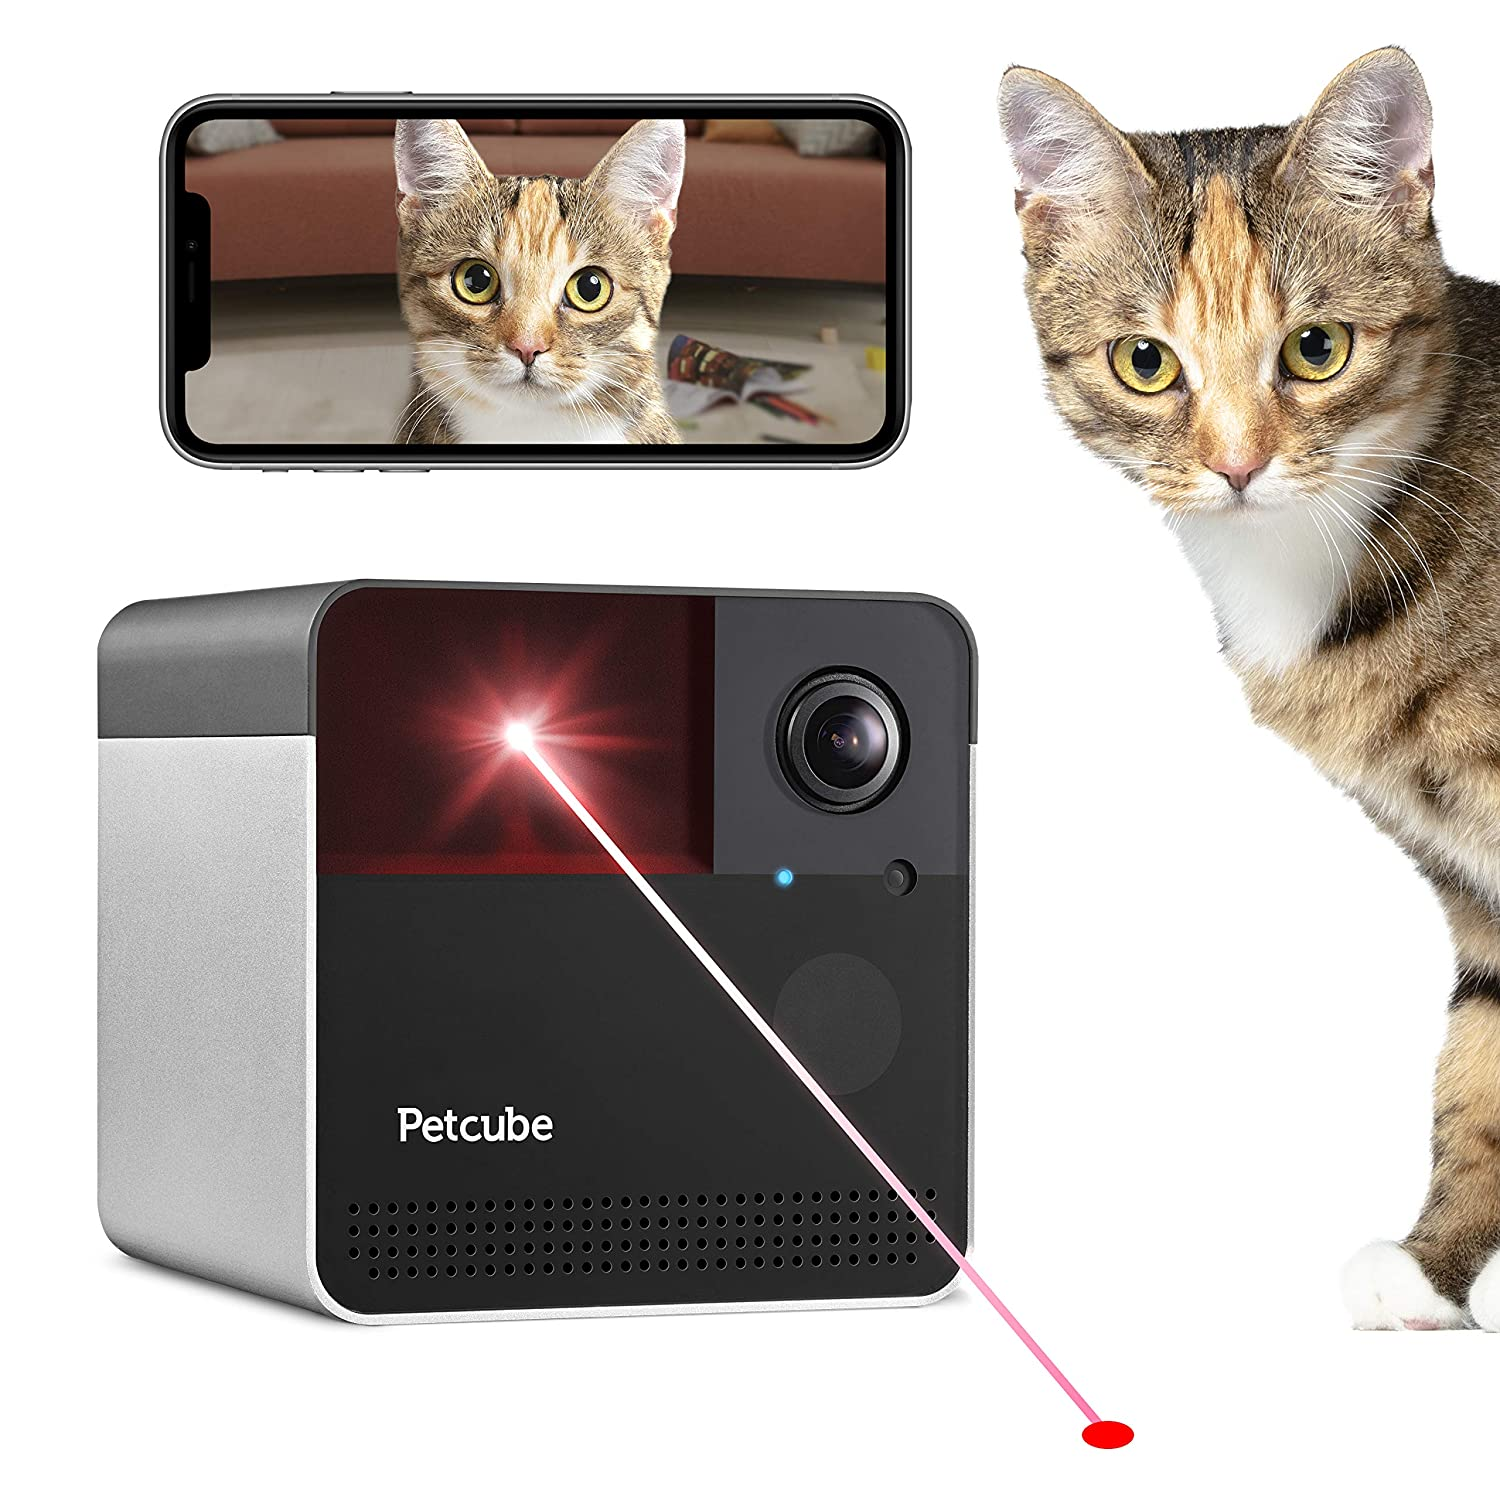 New 2019 Petcube Play 2 Wi-Fi Pet Camera with Laser Toy Alexa Built-In, for Cats Dogs. 1080P HD Video, 160 Full-Room View, 2-Way Audio, Sound Motion Alerts, Night Vision, Pet Monitoring App